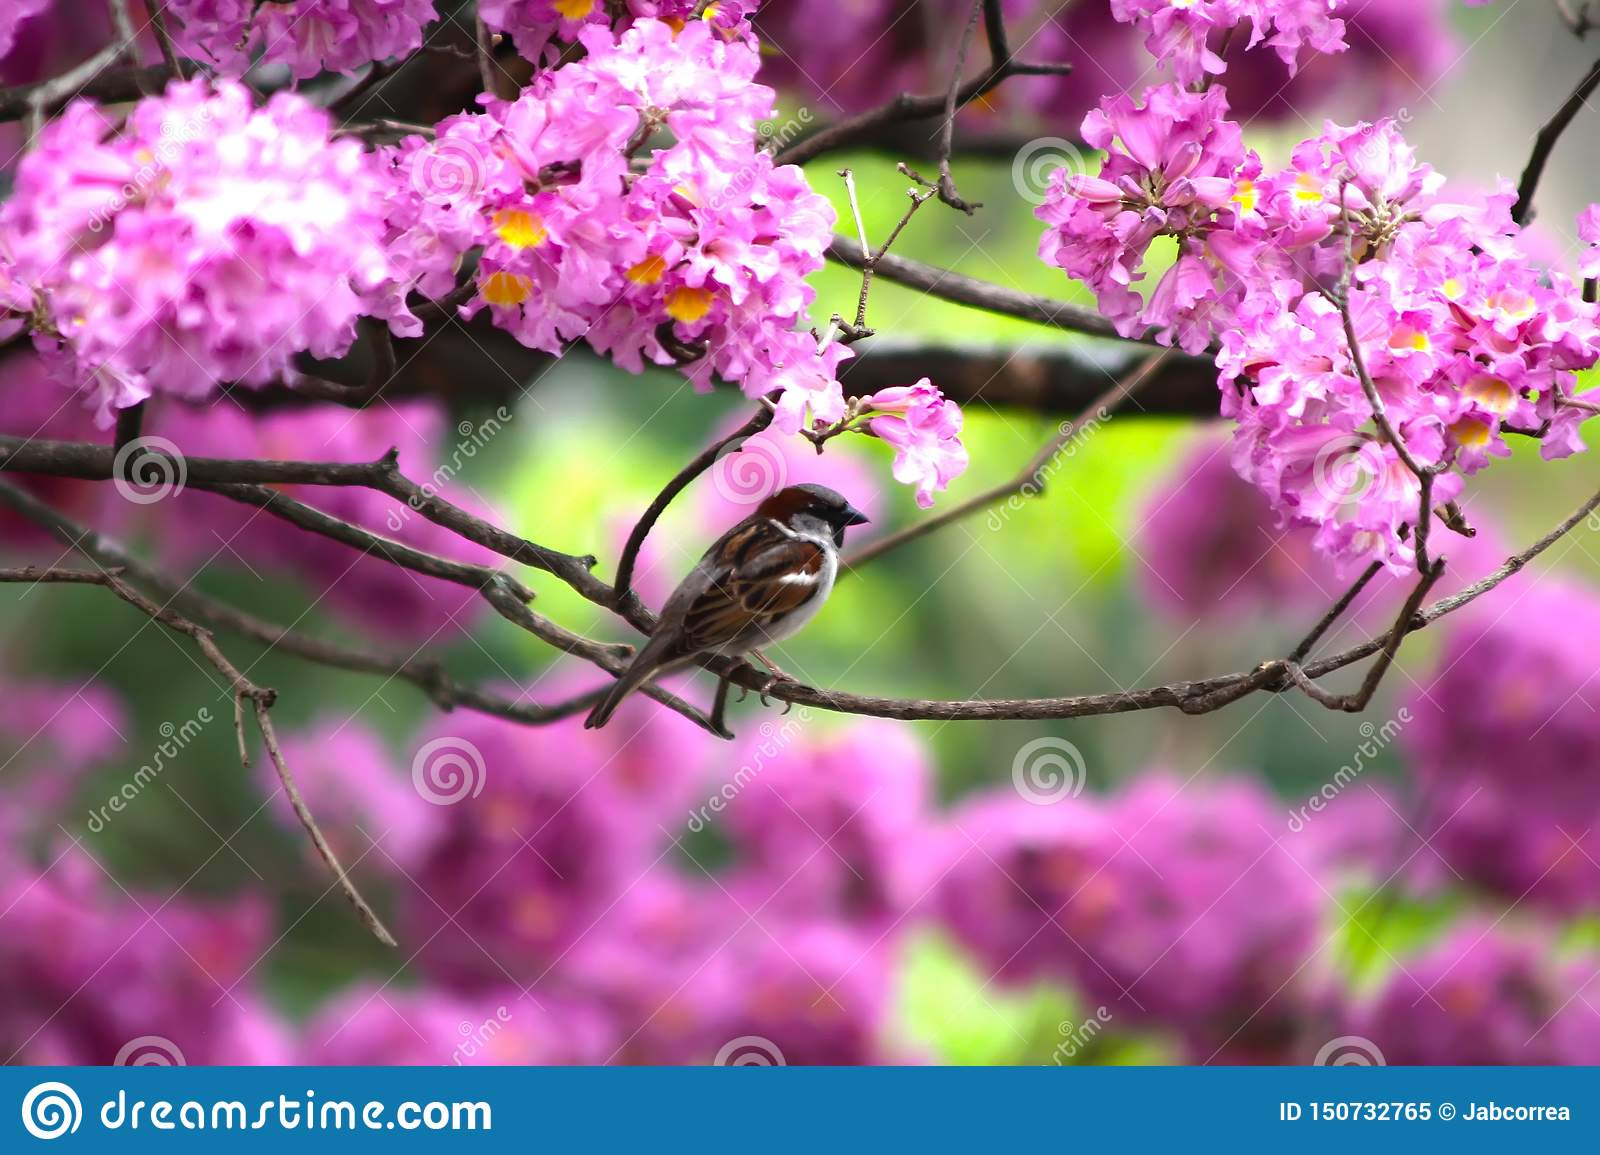 Sparrow among violet flowers